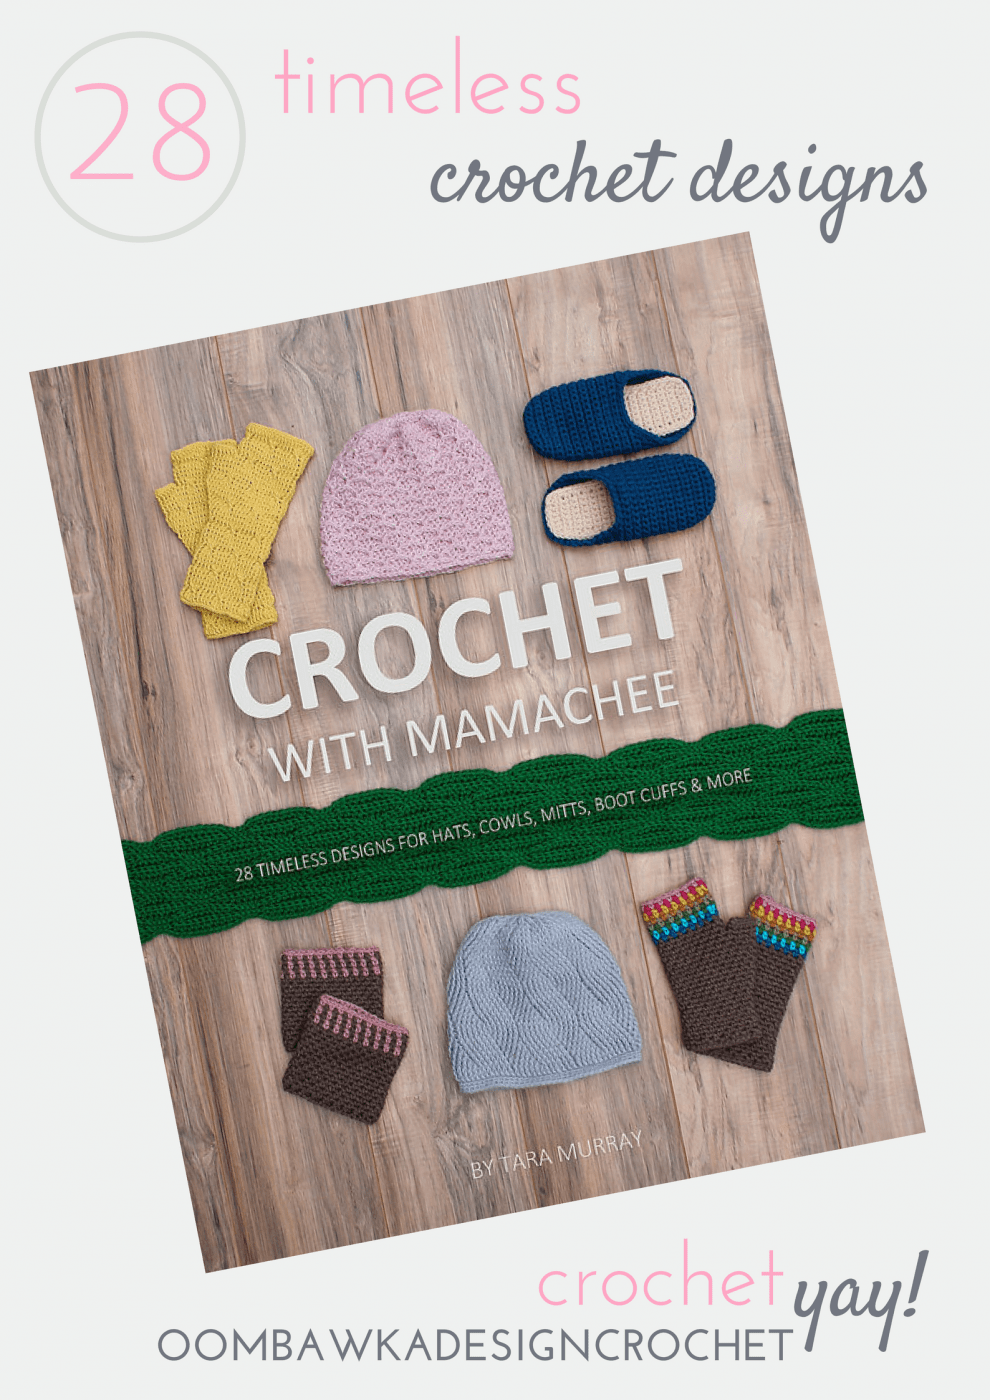 This week's Crochetyay Find is: 28 Timeless Designs Crochet With Mamachee 28 Premium Crochet Patterns for Hats, Cowls, Mitts, Boot Cuffs and More!